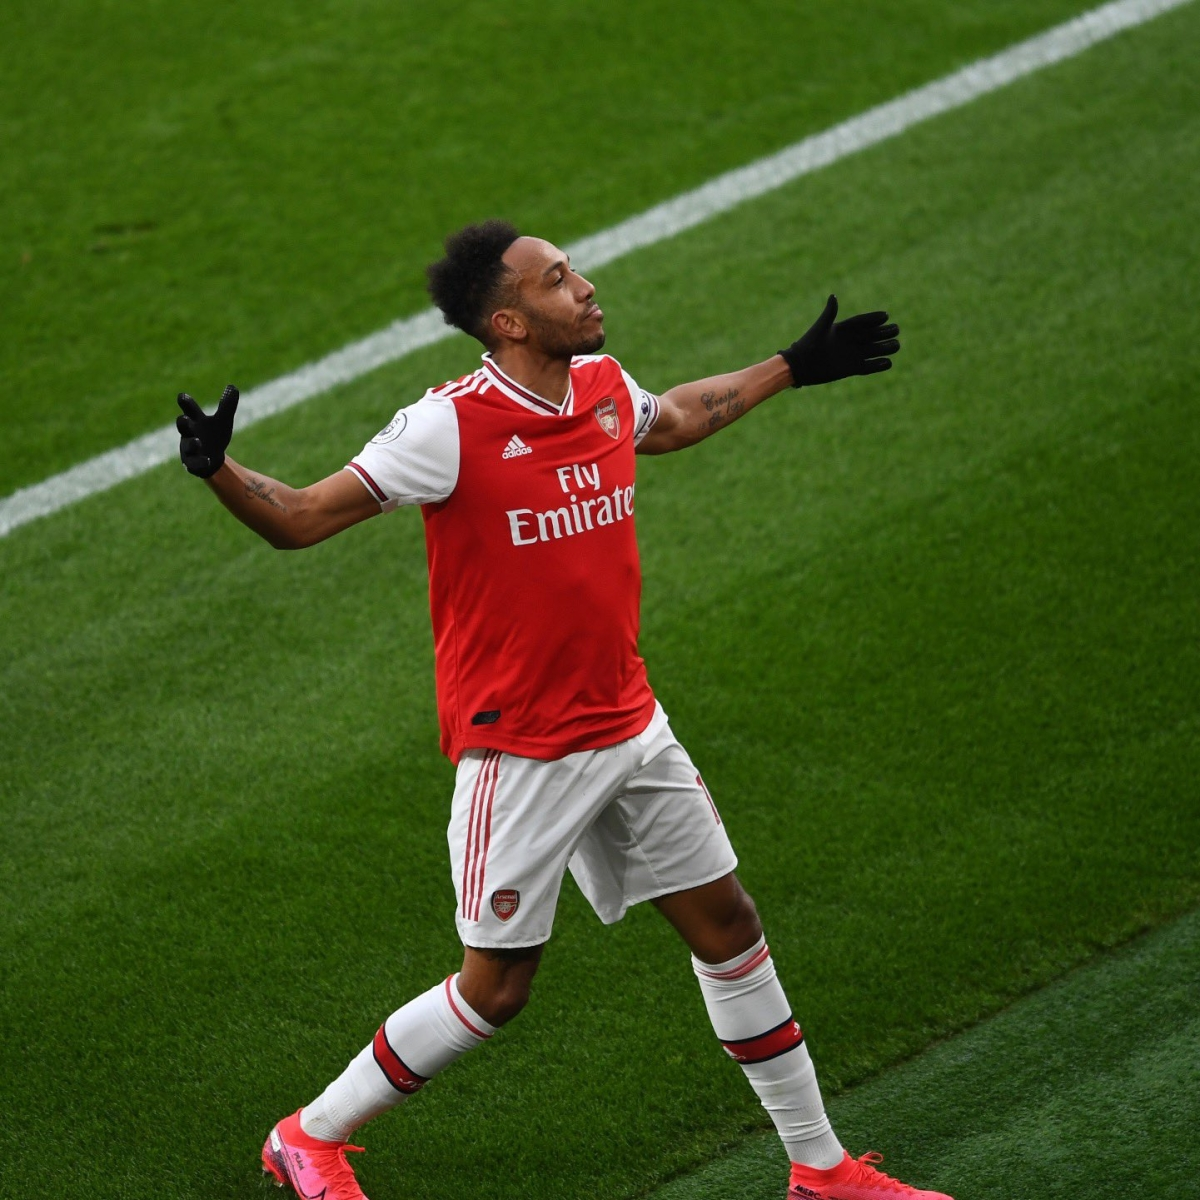 Premier League: Arsenal thrash Norwich City in 4-0 win; Aubameyang overtakes Thierry Henry to become fastest 'gunner' to reach 50 goals